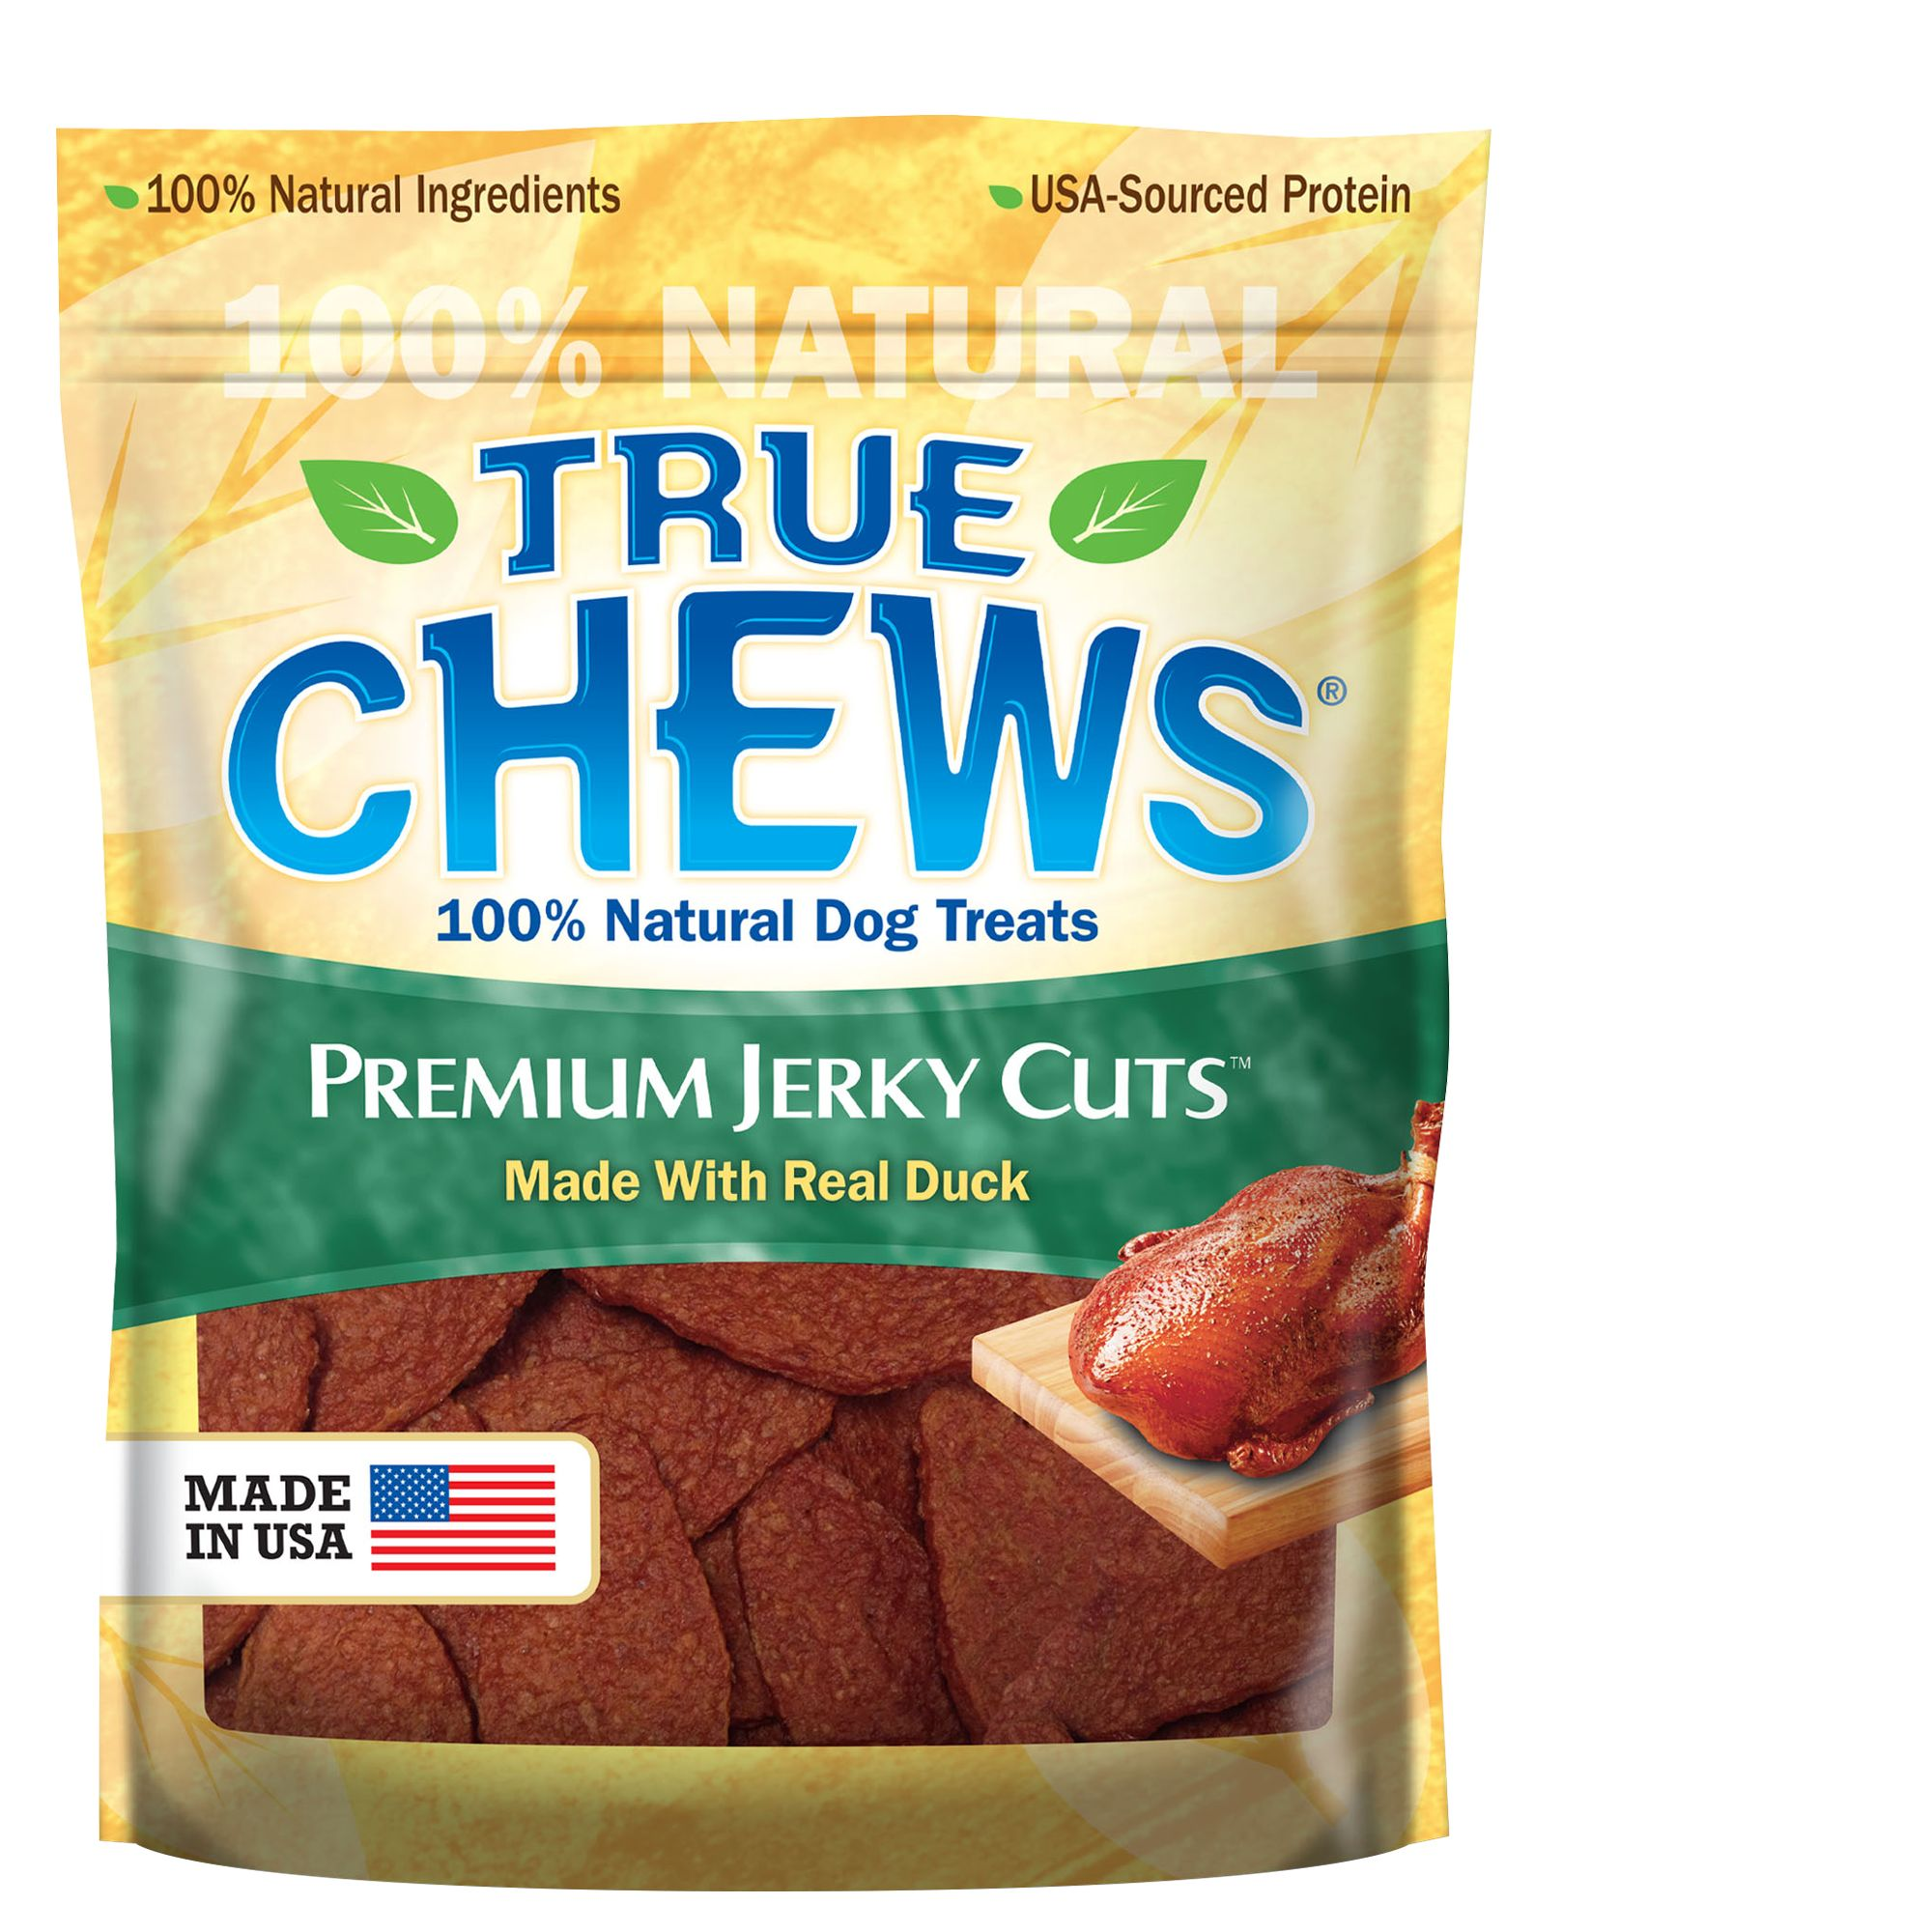 True Chews Premium Jerky Cuts Dog Treat - Natural, Duck size: 22 Oz, Puppy to Senior 5239060